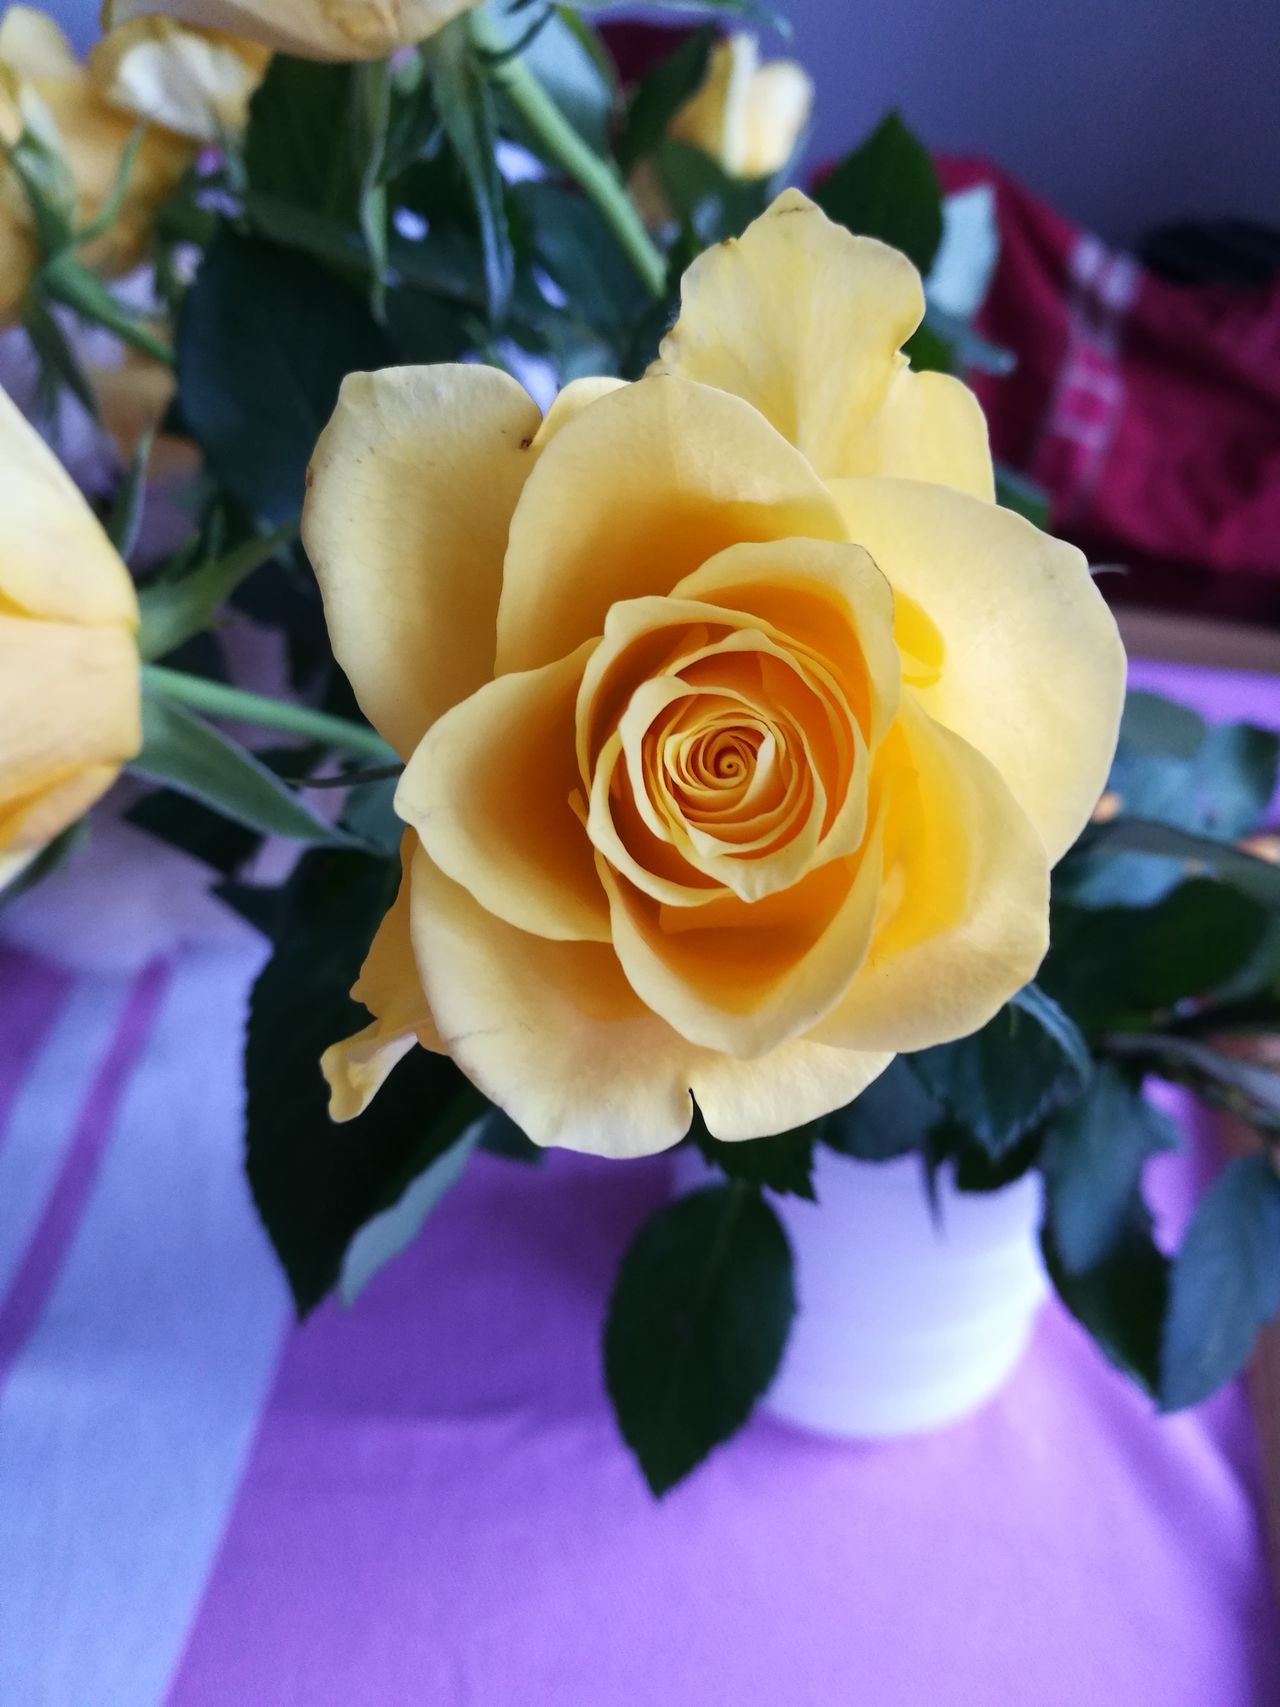 Flower Beauty In Nature Nature Petal Fragility Flower Head Freshness Close-up Growth Plant No People Day Spiral Birthday Flowers Roses Yellow Rose Friendship Crisp Pink Tablecloth Stripes Beautiful Nottinghamshire No Filter, No Edit, Just Photography Daylight Photography